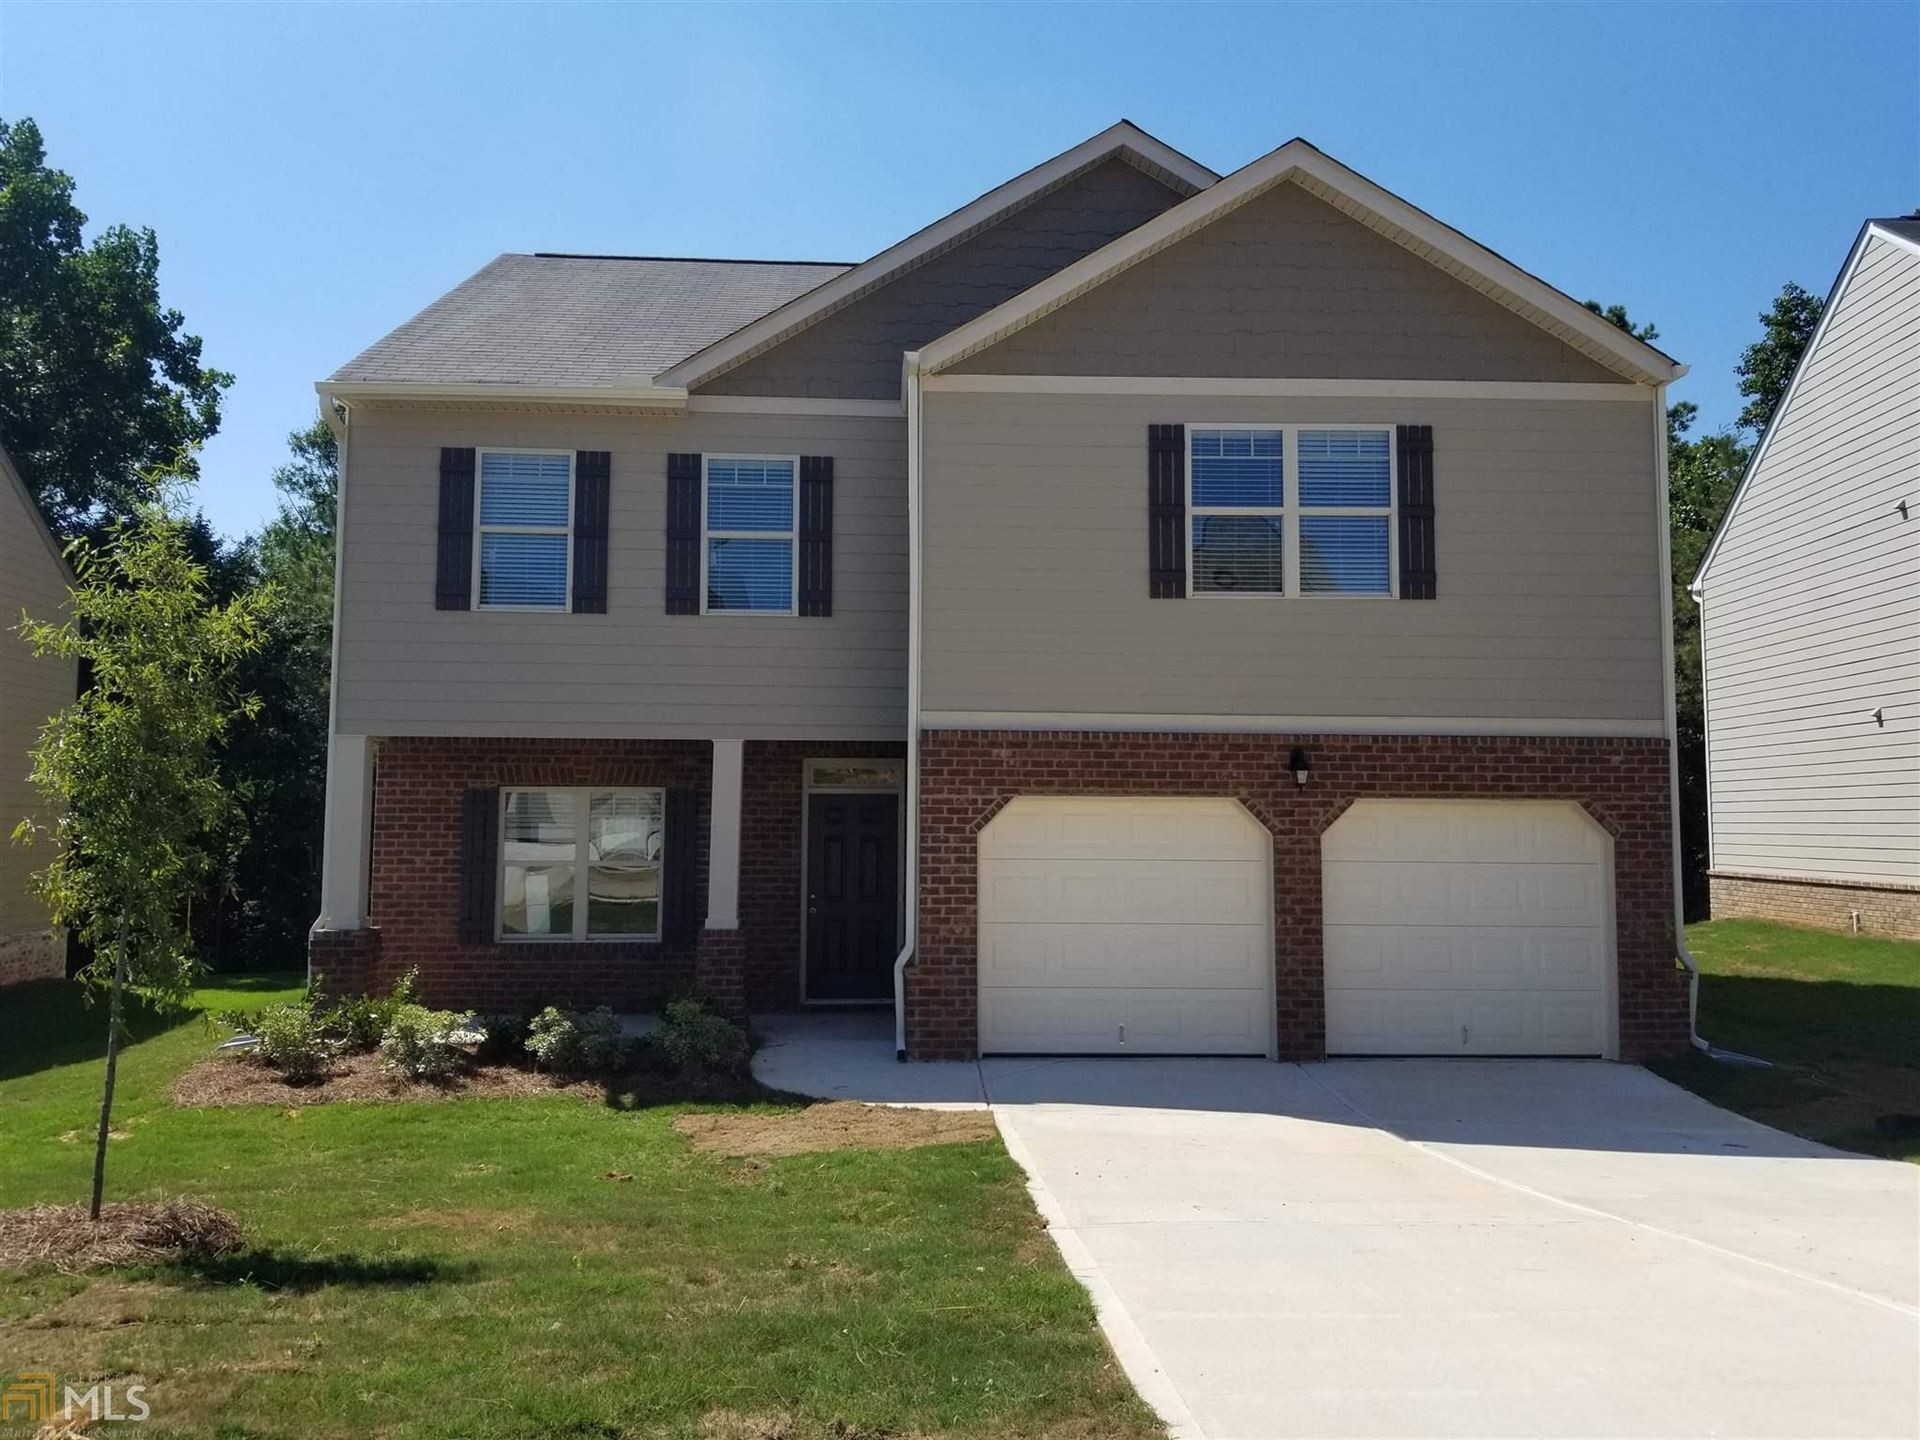 1533 Denver Way, Locust Grove, GA 30248 - #: 8855672